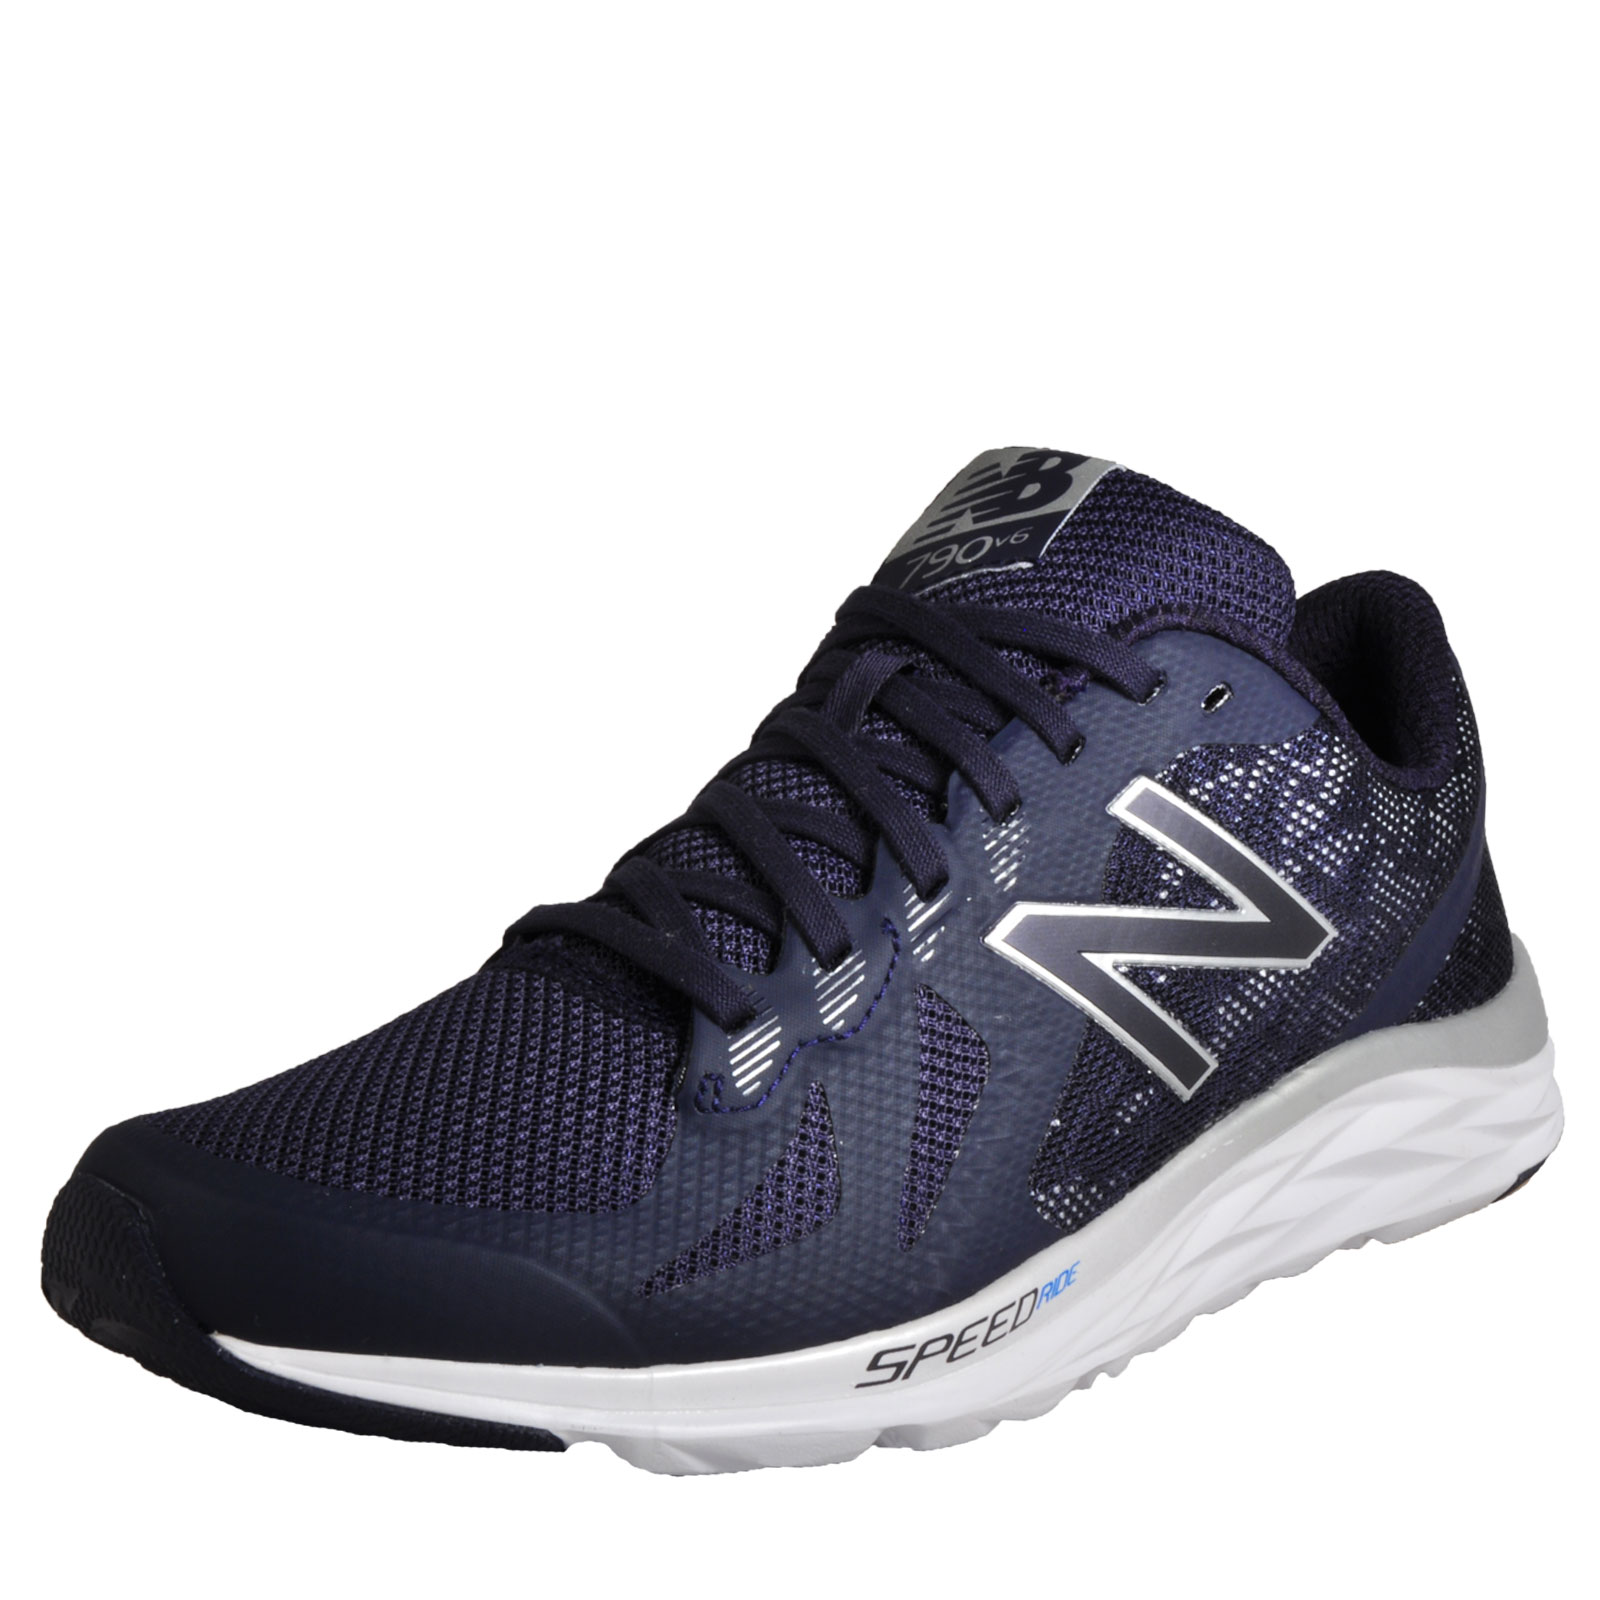 la meilleure attitude 158df 170fa Details about New Balance 790 V6 Mens Premium Running Shoes Fitness Gym  Workout Trainers Navy